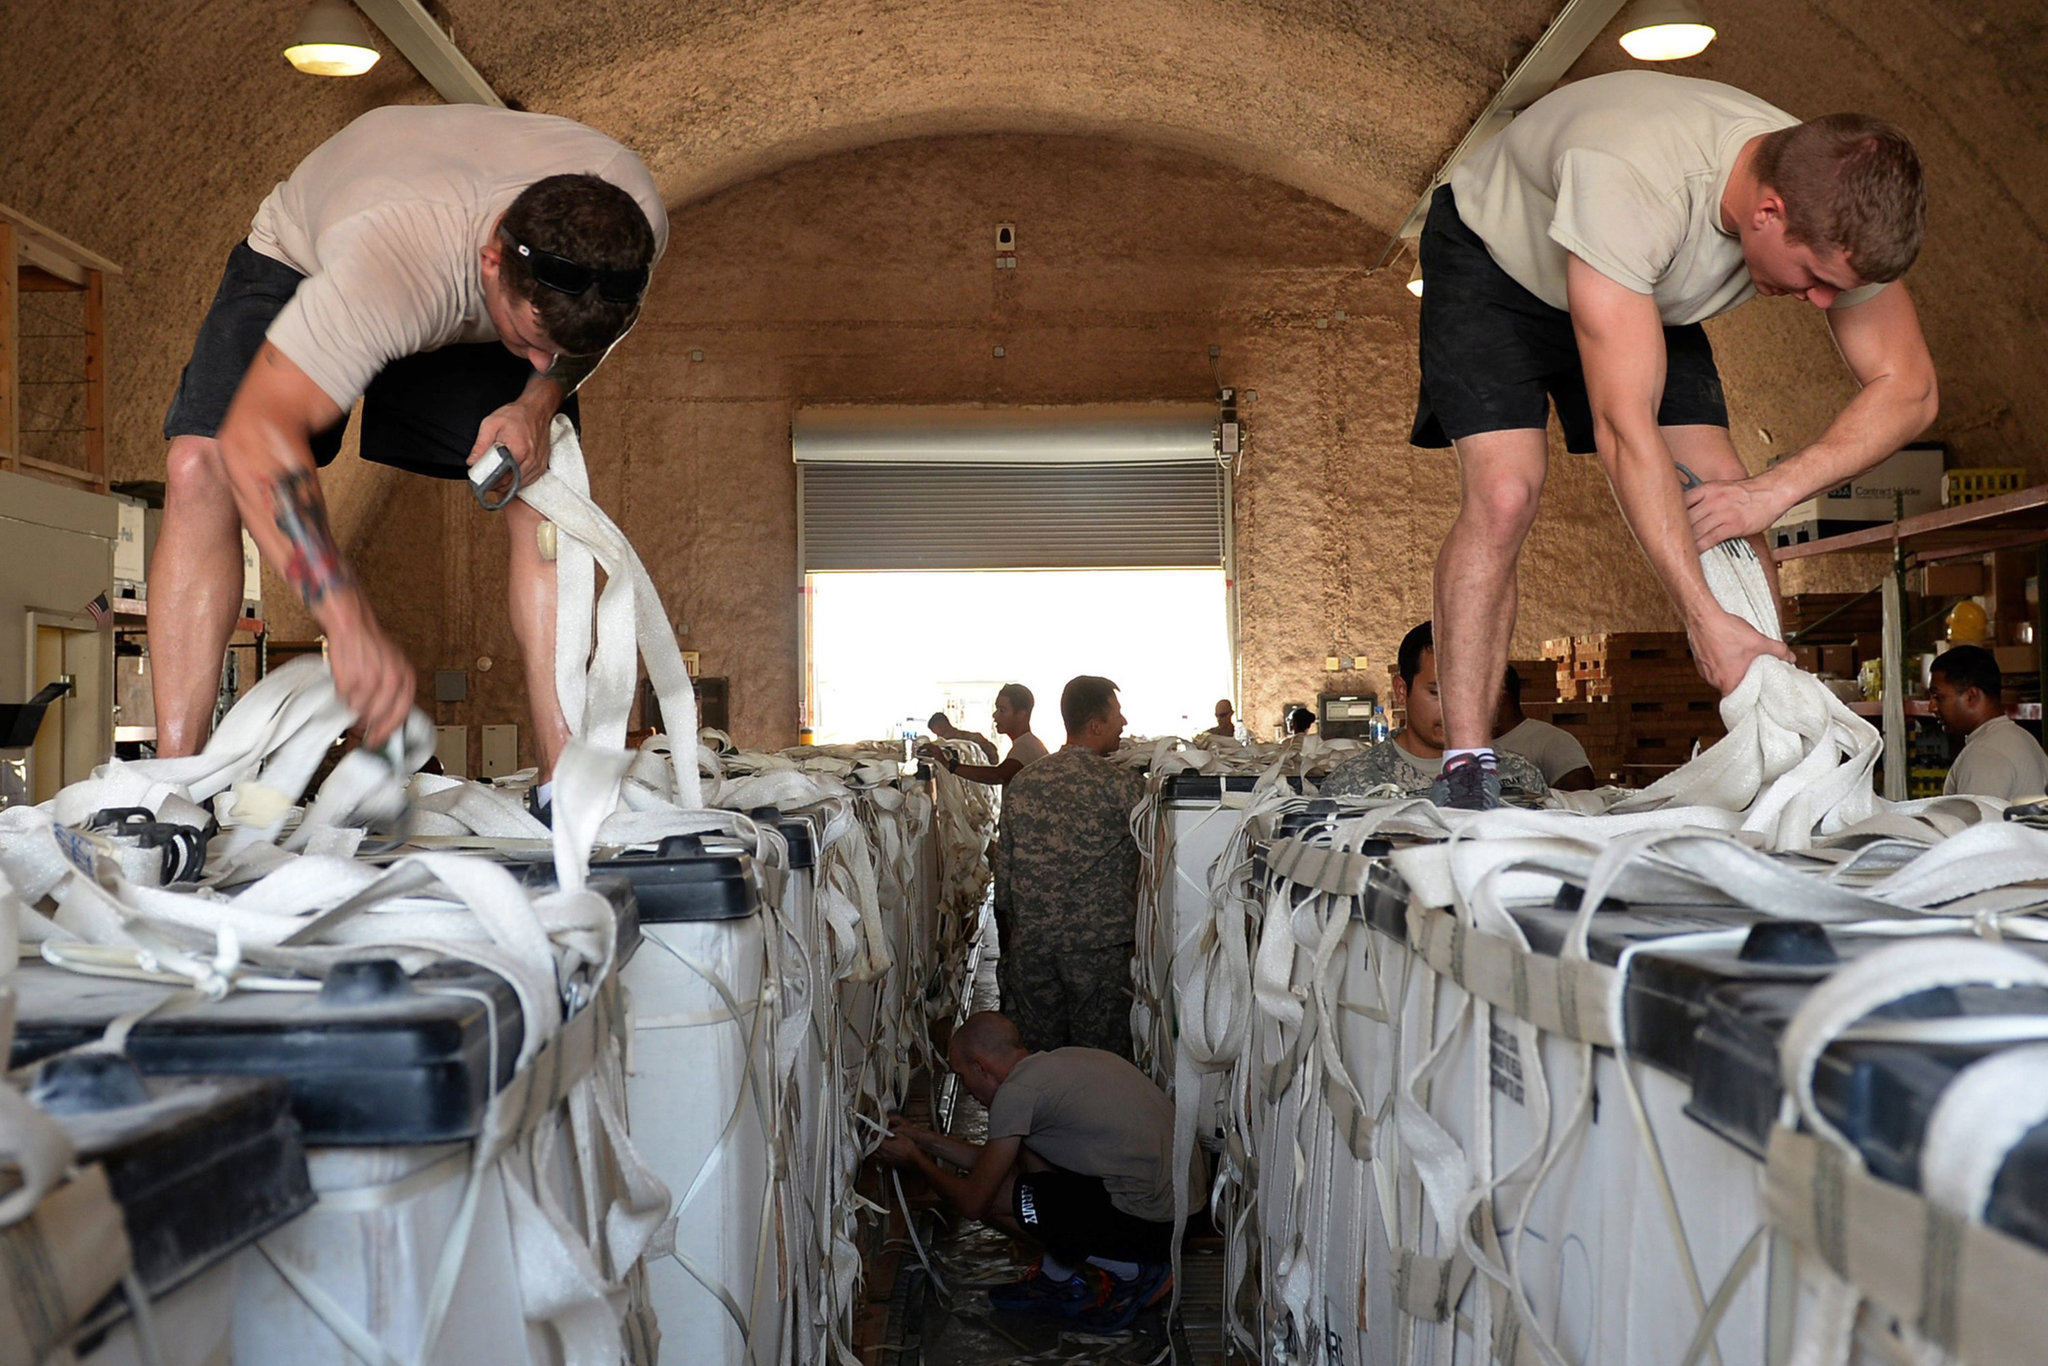 Parachute riggers for the United States Army prepared water to be airdropped over Iraq.